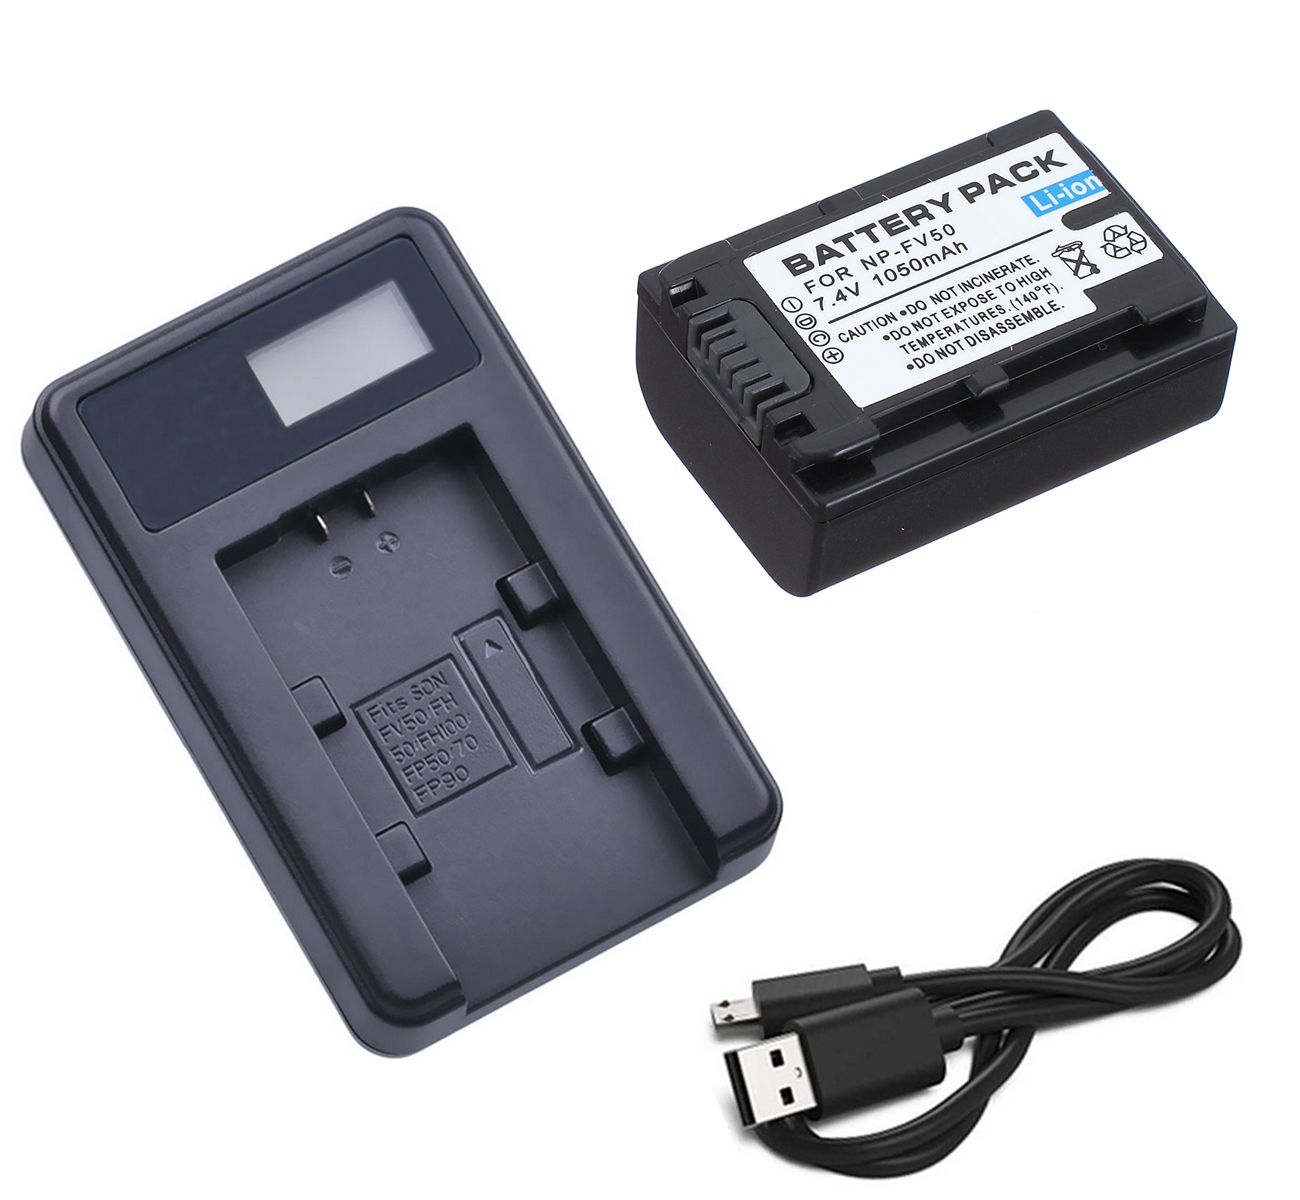 Battery Pack for Sony HDR-CX200E HDR-CX210E HDR-CX230E Handycam Camcorder HDR-CX220E